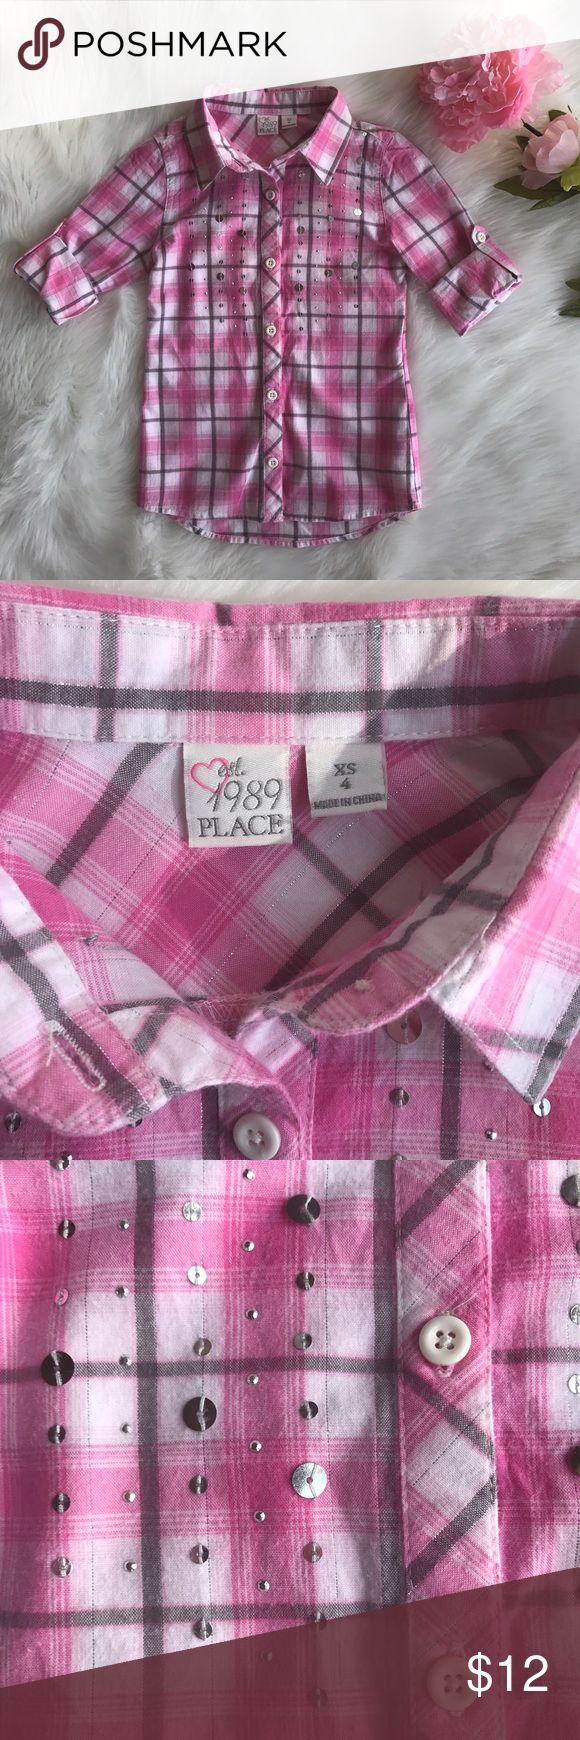 Children's Place Pink Plaid Shirt -ITEM: Girl's Button-down Shirt -CONDITION: Good -SIZE: XS 4 (Girl) -COLOR: Pink, White, Gray -CLOSURE: Front Button Placket -CARE: Machine Washable -MATERIALS: 99% Cotton, 1% Other Fabric ( that's what the label says) -APPROXIMATE MEASUREMENTS IN INCHES (LAYING FLAT): coming soon -FEATURES: * Long roll-tab sleeves * Collared neck * Silver sequins detail at front * Silver metallic thread -NOTES: It has a small hole in the back close to the hem (pic #6)…